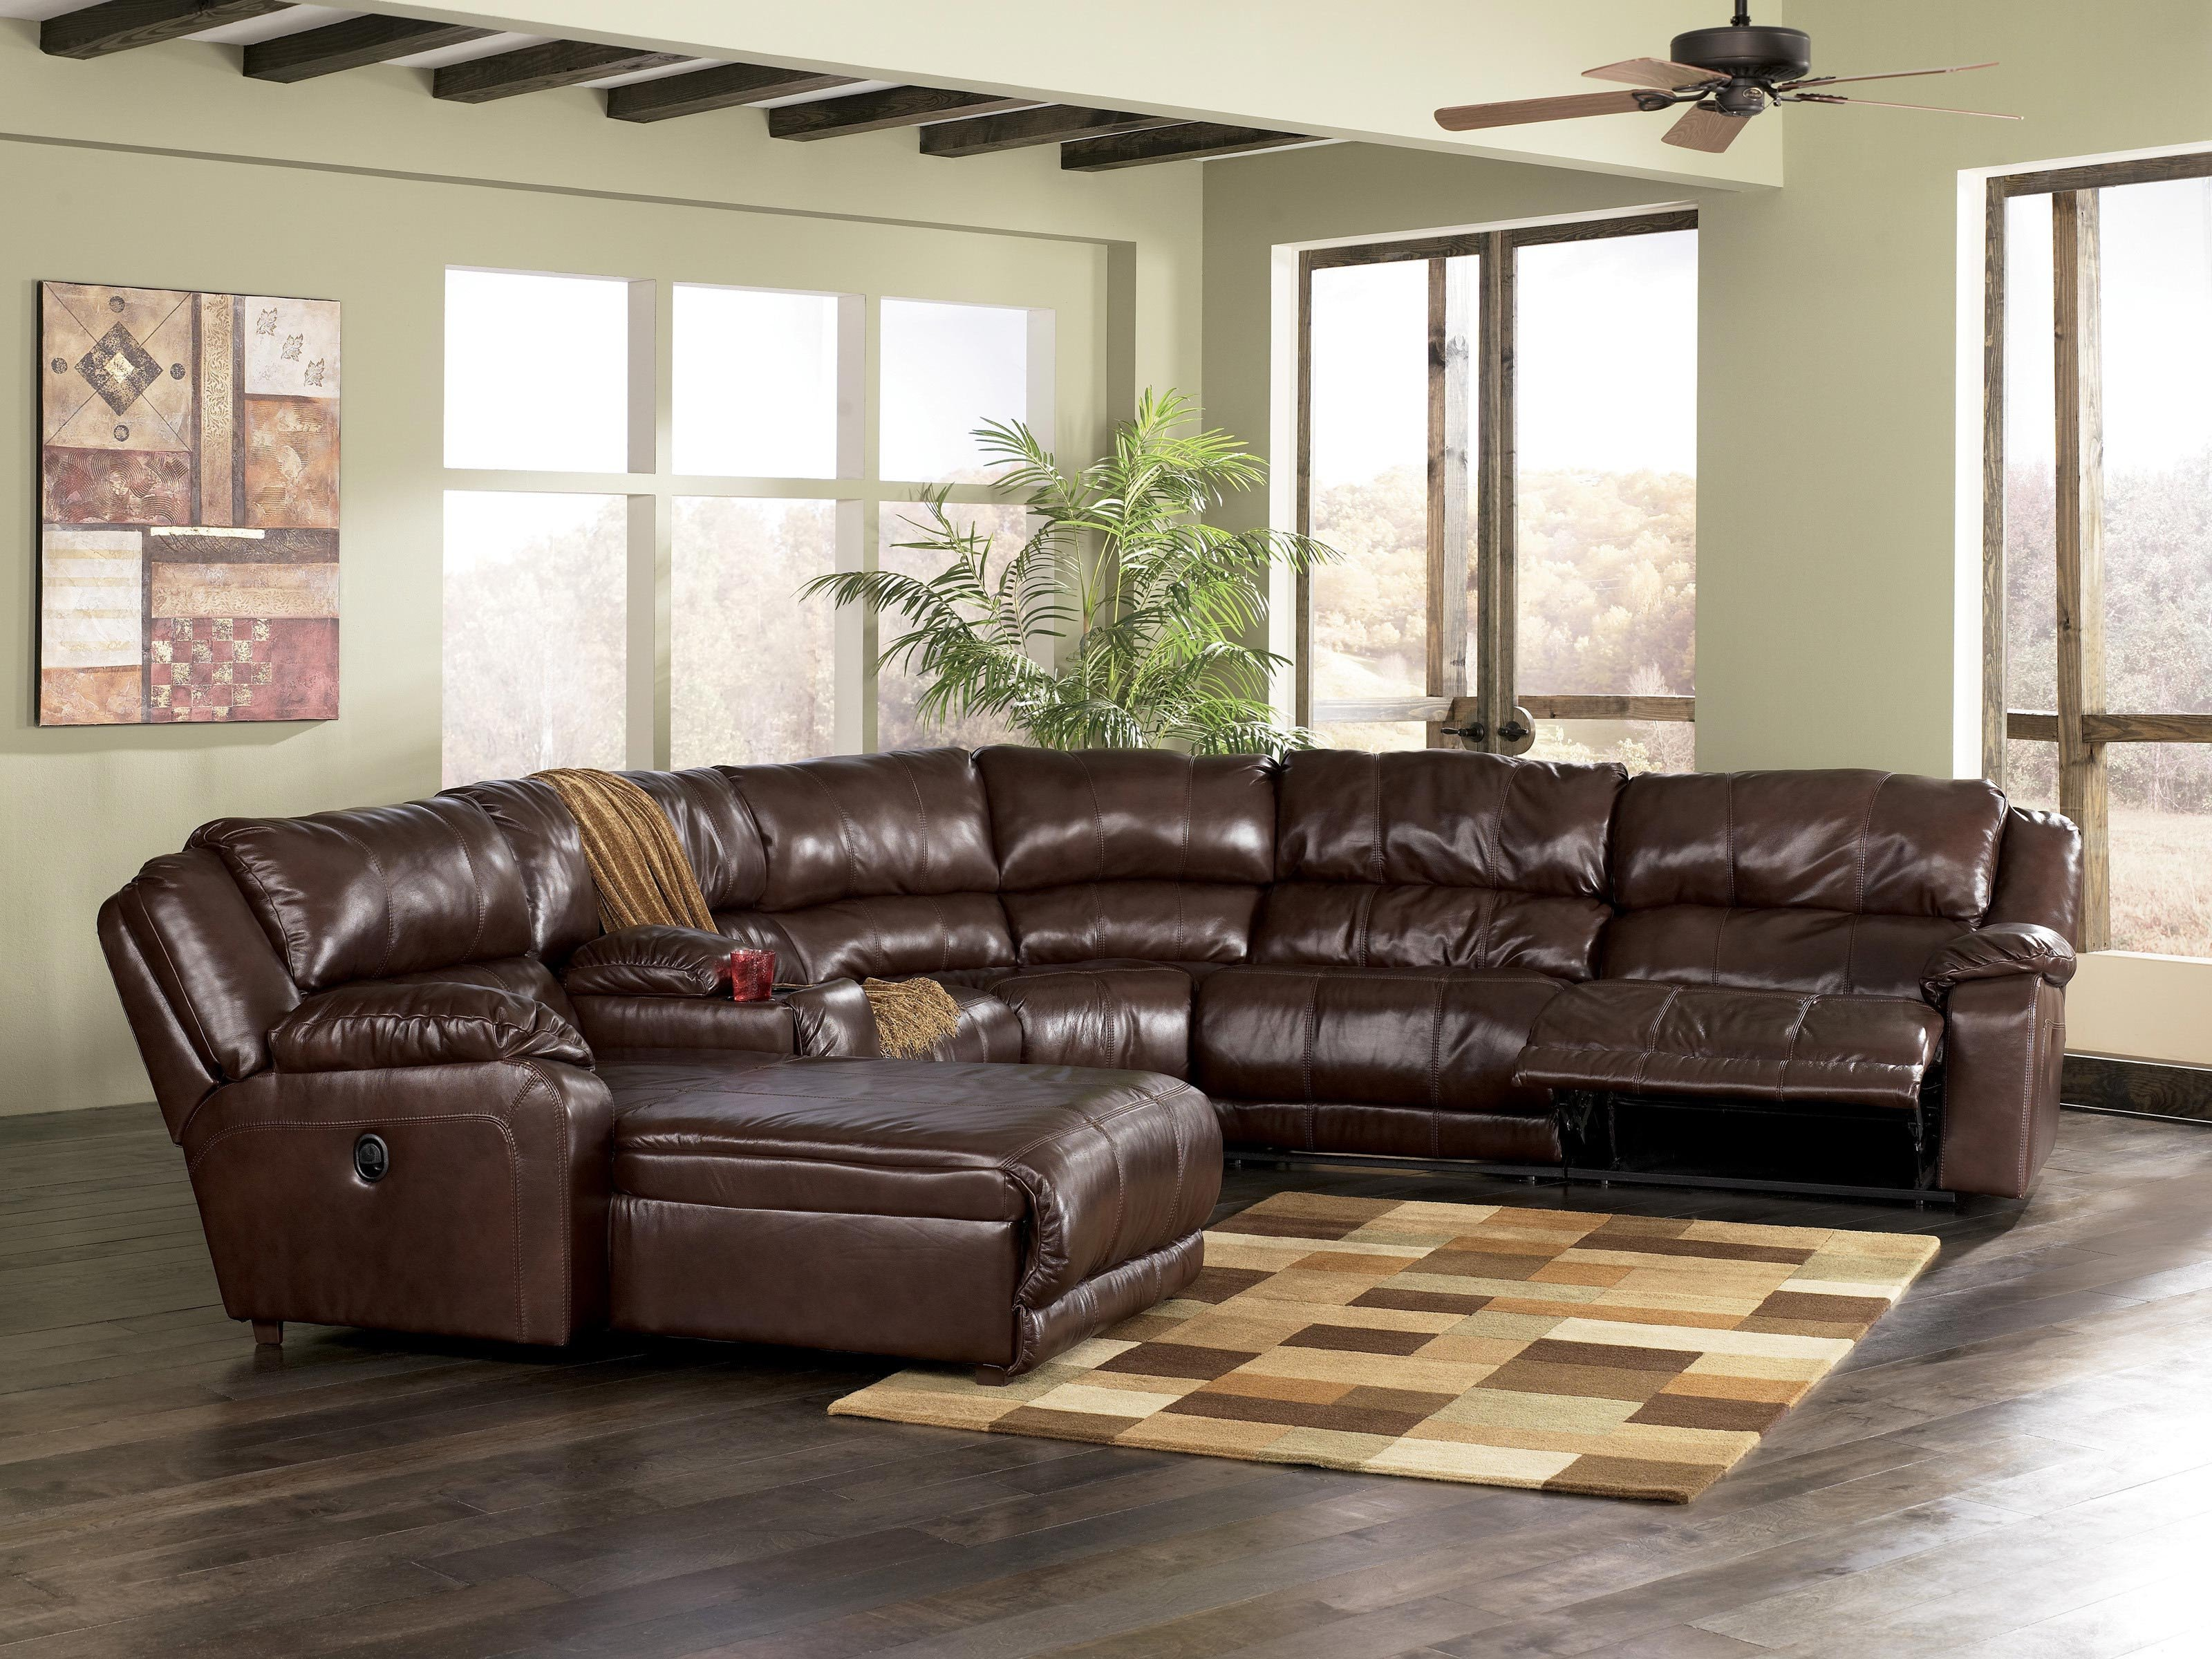 Small Living Room Ideaswith Sectionals Living Room Ideas with Sectionals sofa for Small Living